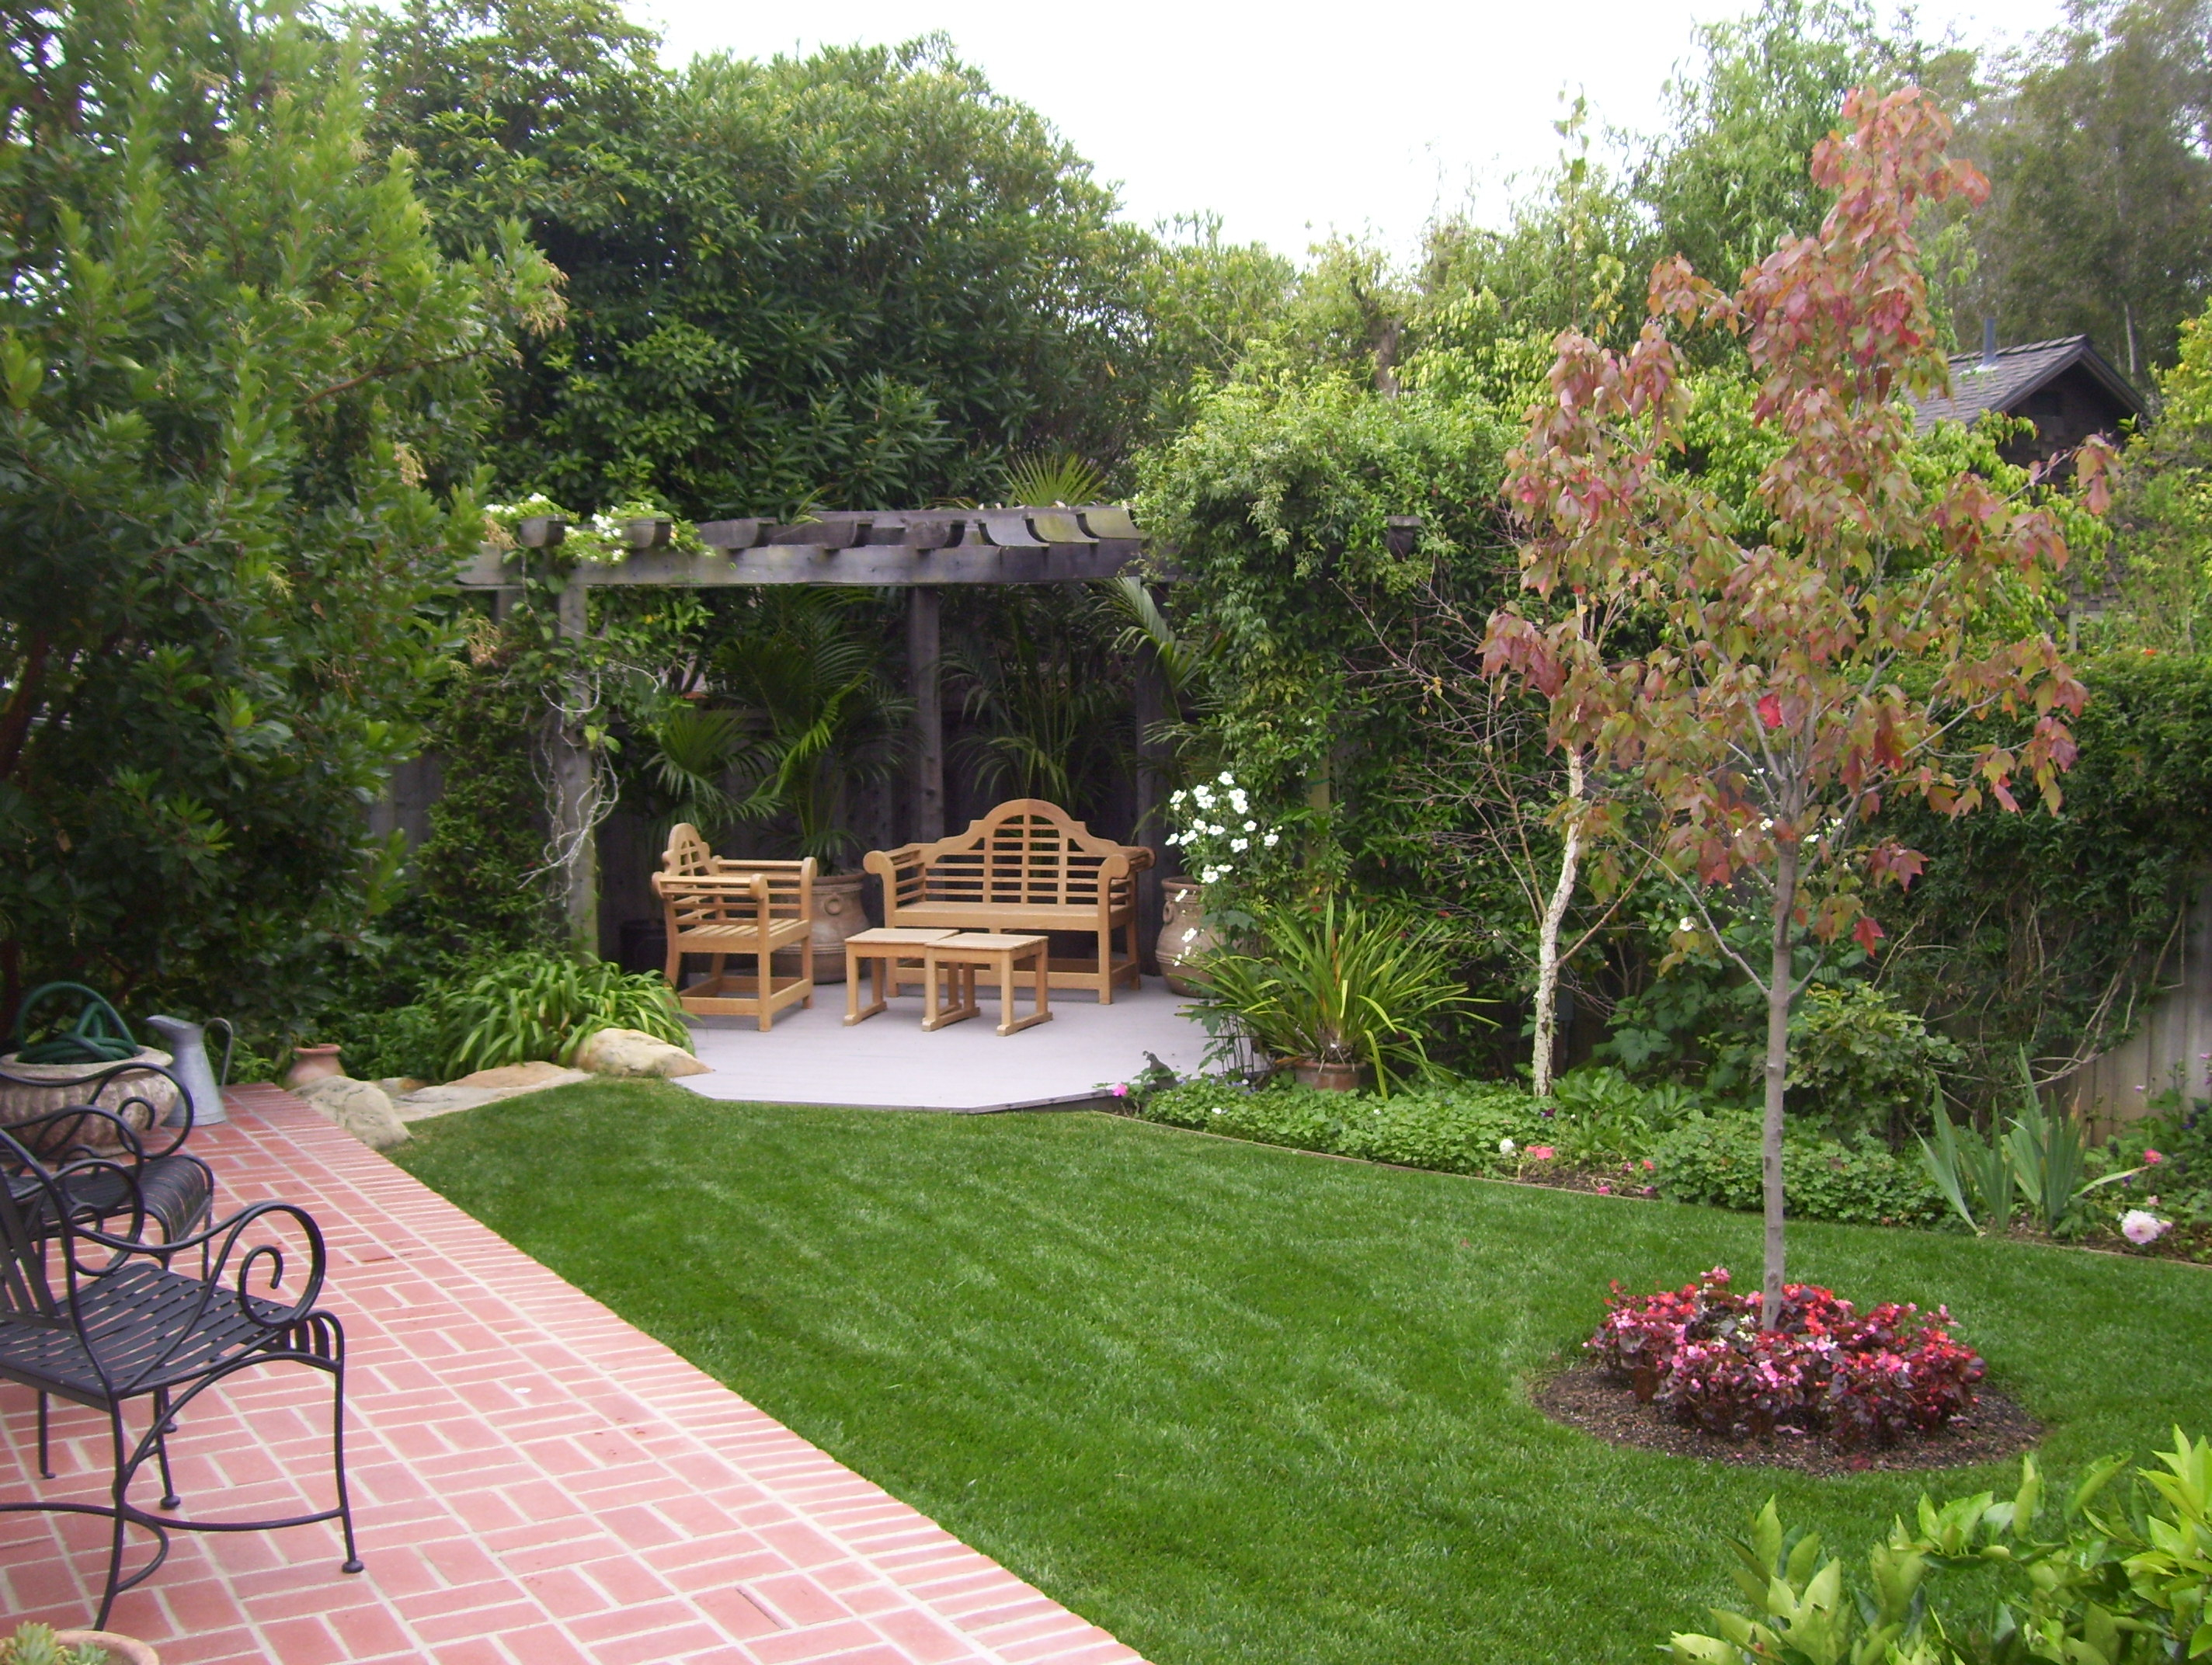 Backyard Landscaping Ideas Santa Barbara Down To Earth Landscapes intended for Cheap Backyard Landscaping Ideas Pictures